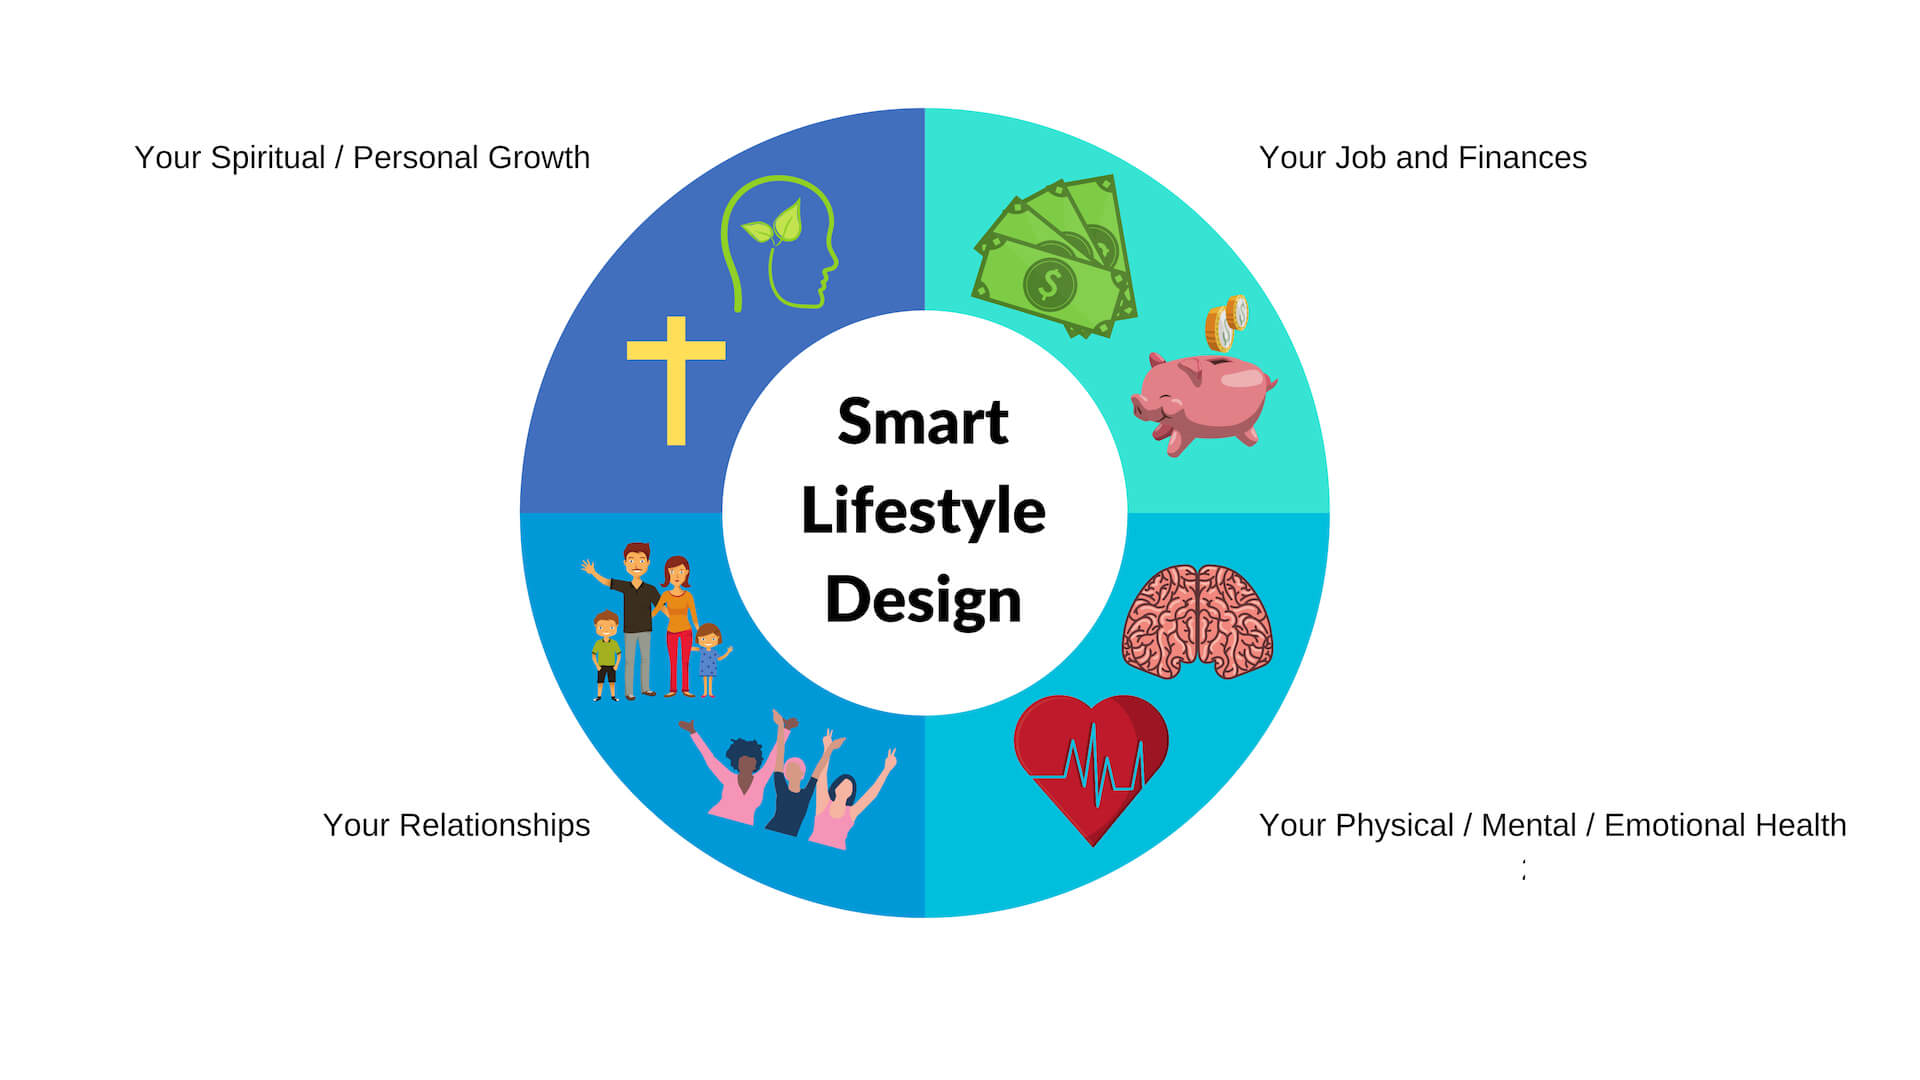 Smart Lifestyle Design